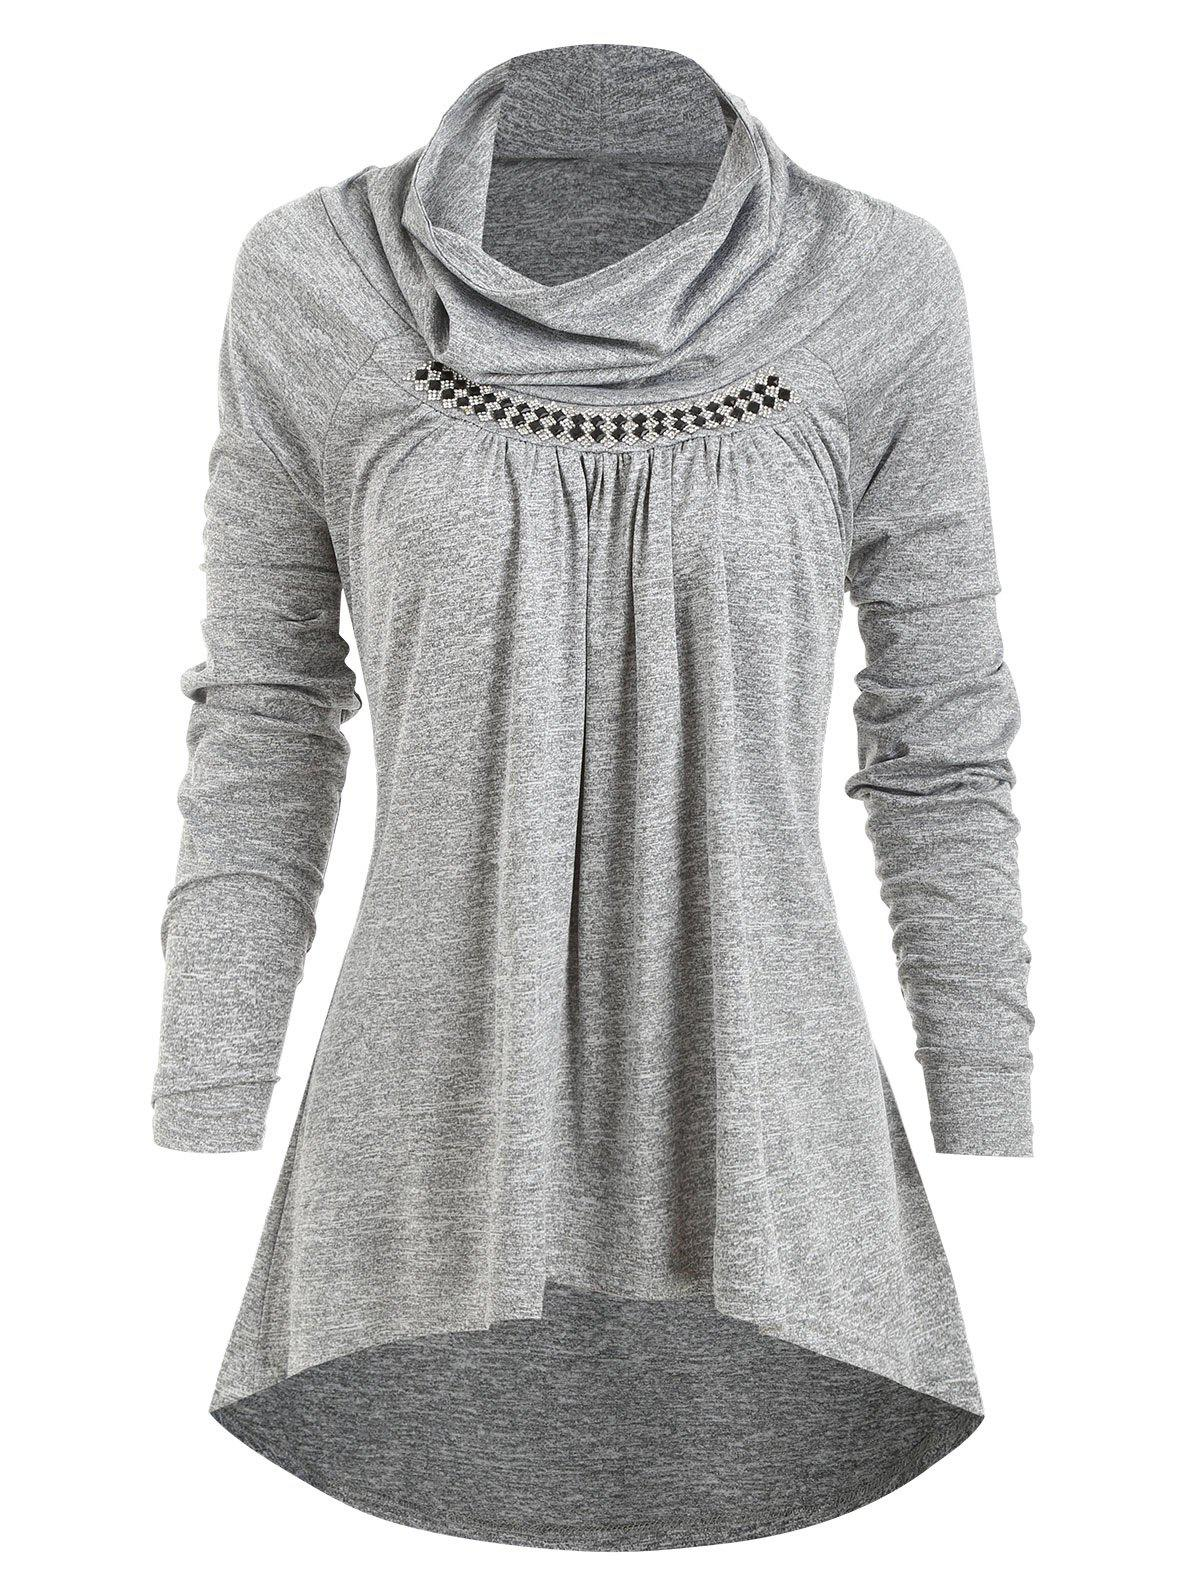 Shop Rhinestones Cowl Neck Ruched Heathered Tee